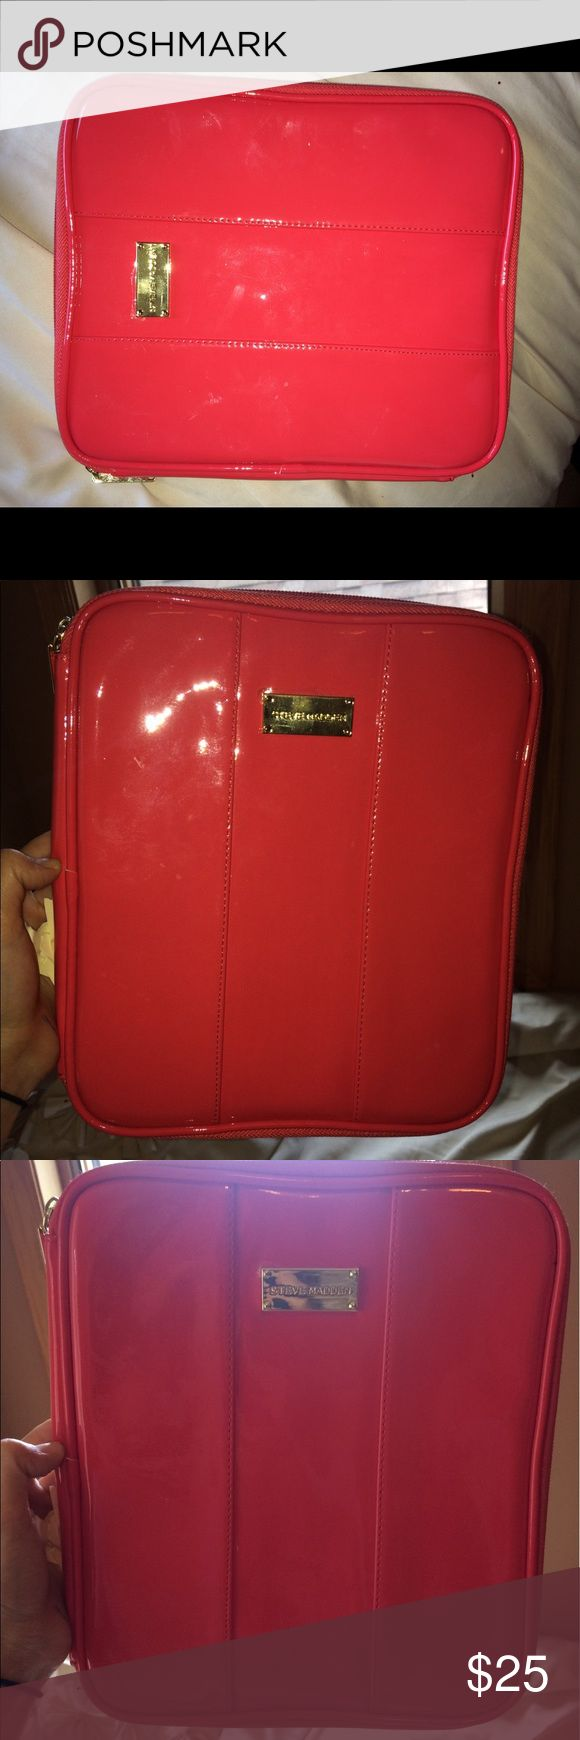 Steve Madden iPad Case- Coral Never used!  Designer iPad case. Super chic and stylish way to keep your iPad safe!  This zips easily, and has straps on the inside to help hold your iPad in place. There is also a pocket on the left inside sleeve to keep items. Steve Madden Accessories Laptop Cases